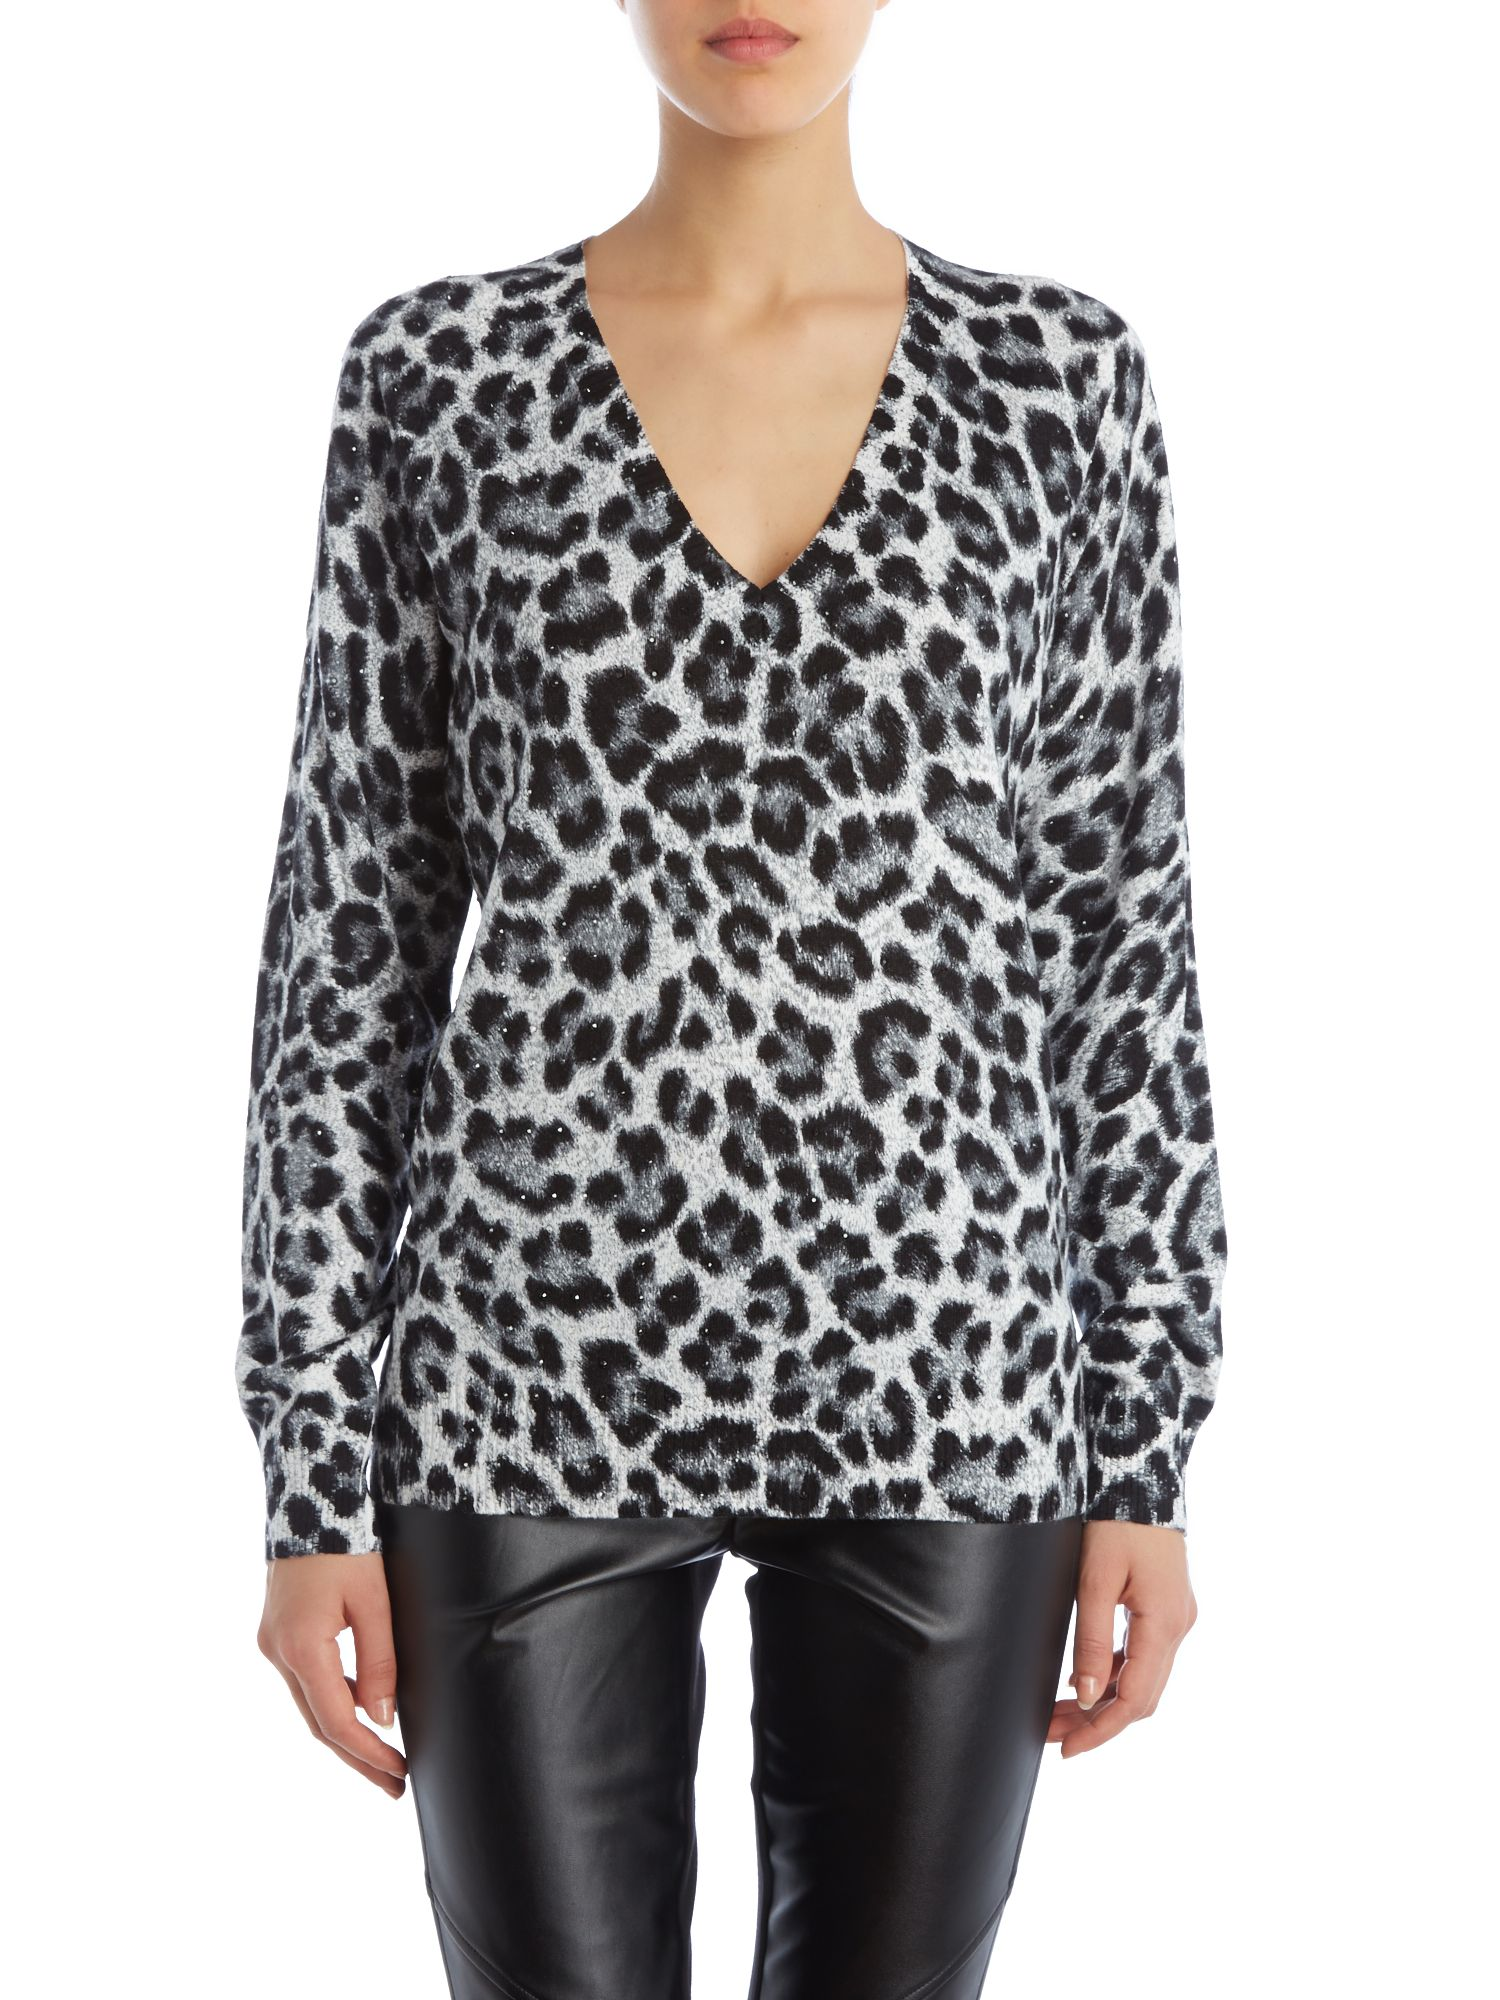 V neck animal print knitted top with stud detail